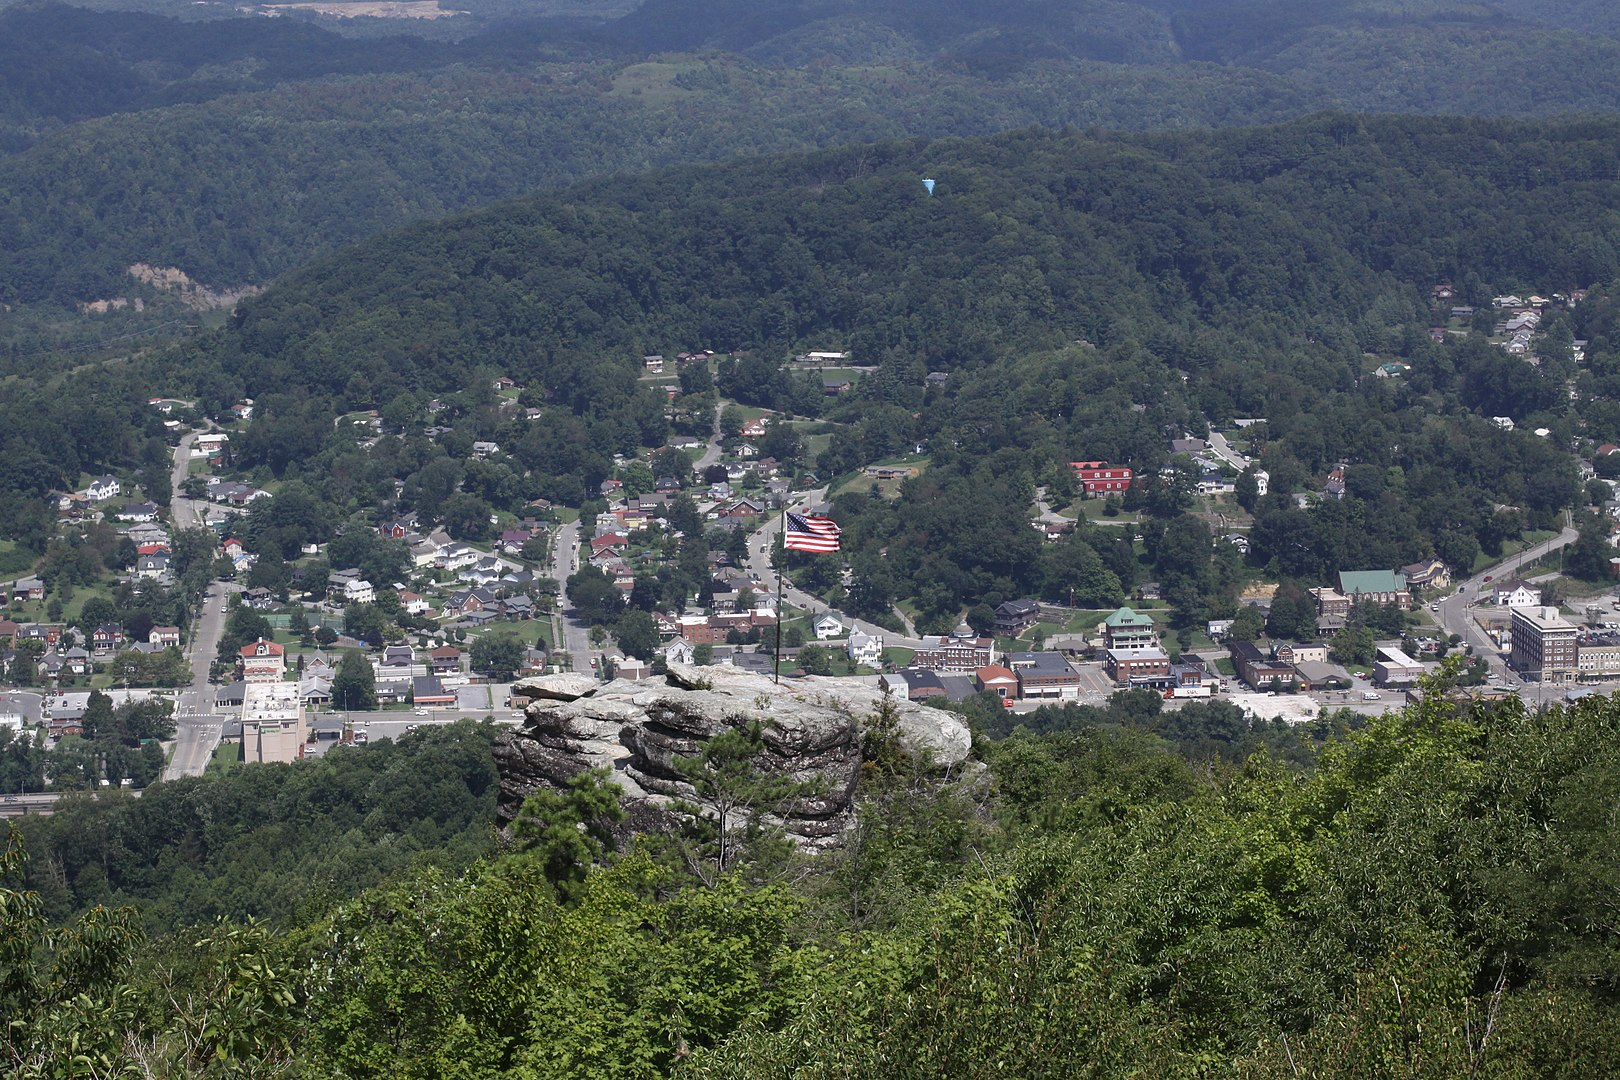 View of small town surrounded by mountains, American flag in foreground